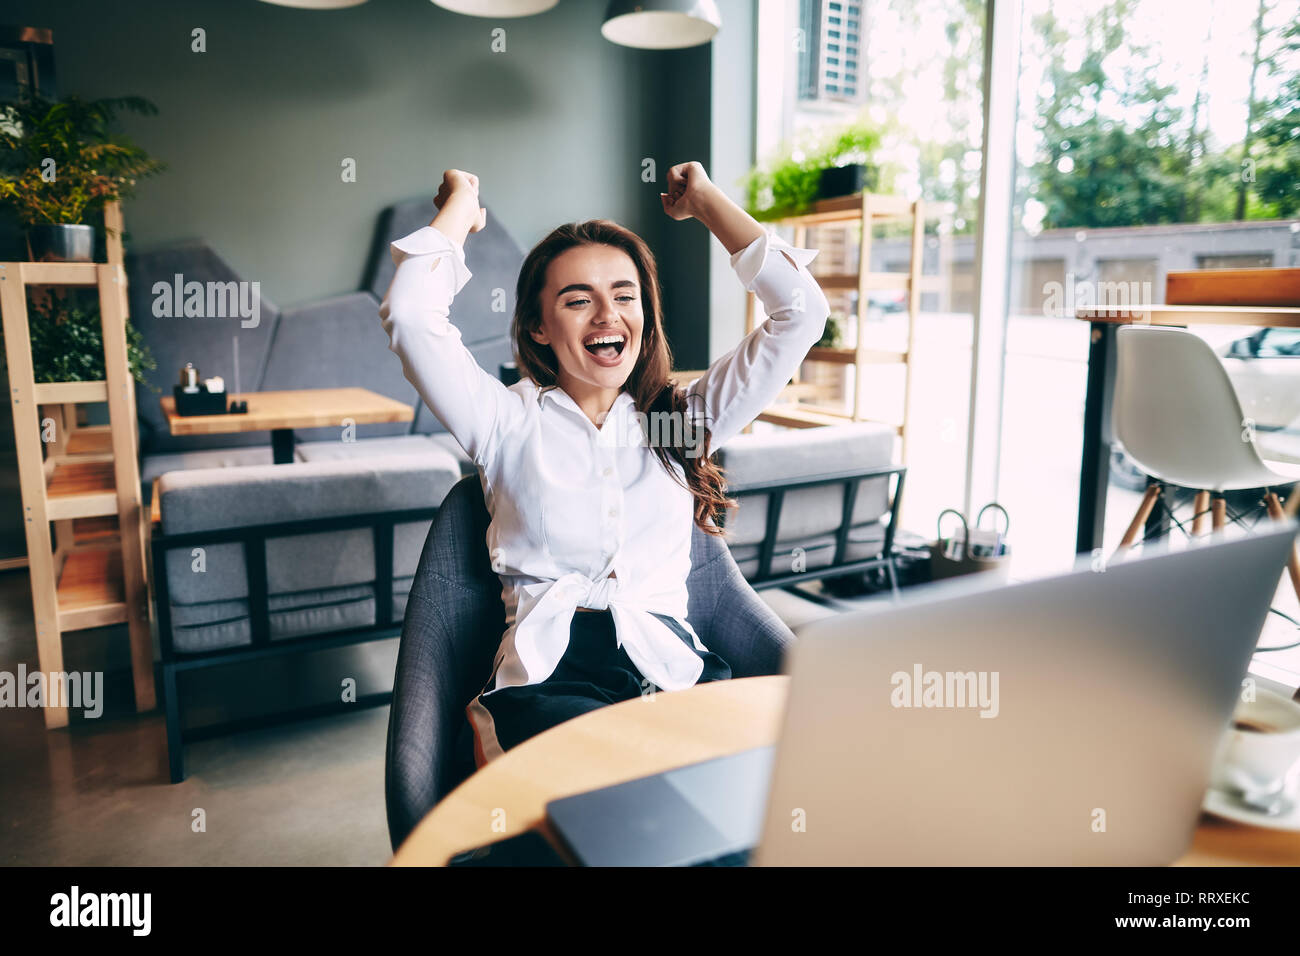 Attractive girl in white shirt working in cafe with gray laptop,  freelance work in progress, work from home, excited, winner. - Stock Image